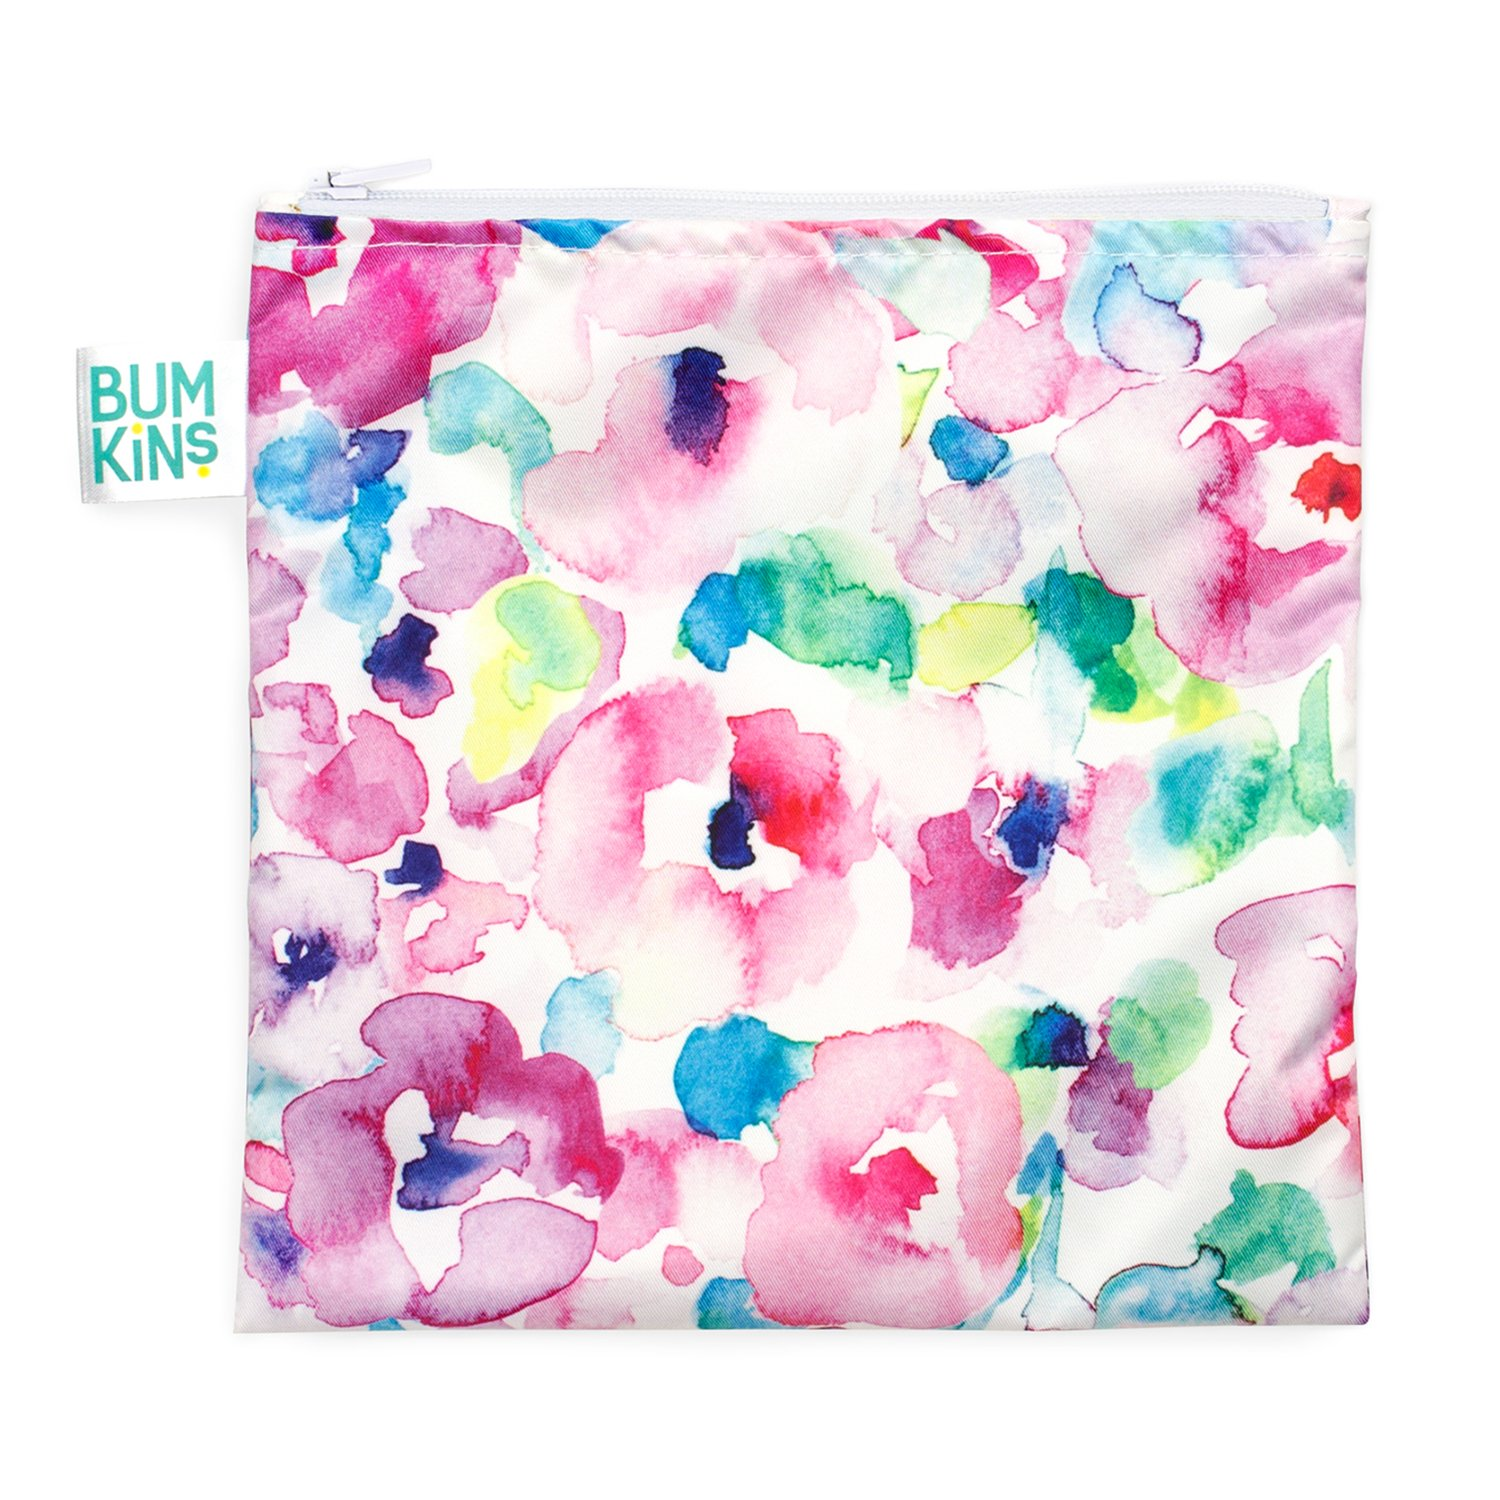 Bumkins Reusable Snack Bag Large, Watercolor SBL-32